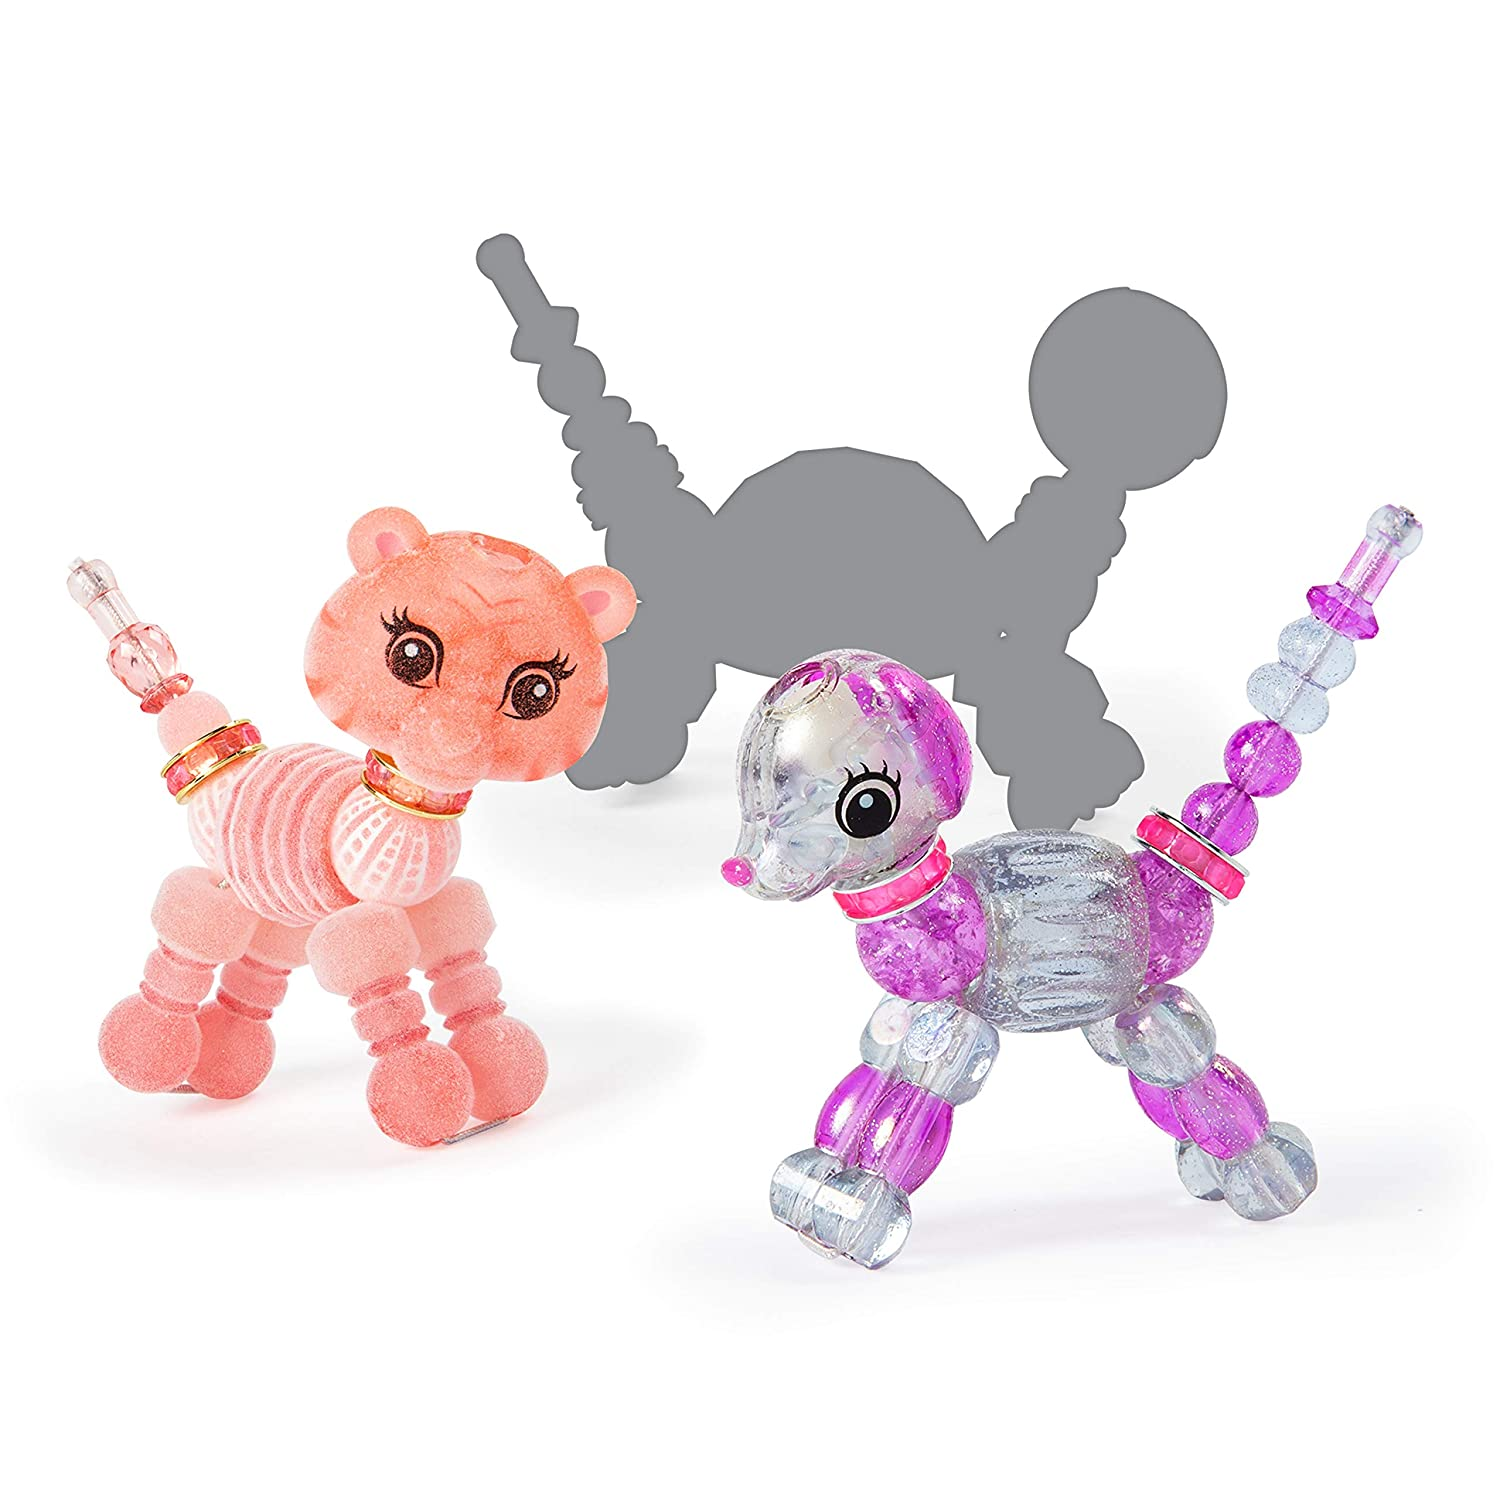 Sugarpie Llama and Surprise Collectible Bracelet Set for Kids Spin Master 20104394 Series 2 3-Pack Skyley Flying Unicorn Twisty Petz